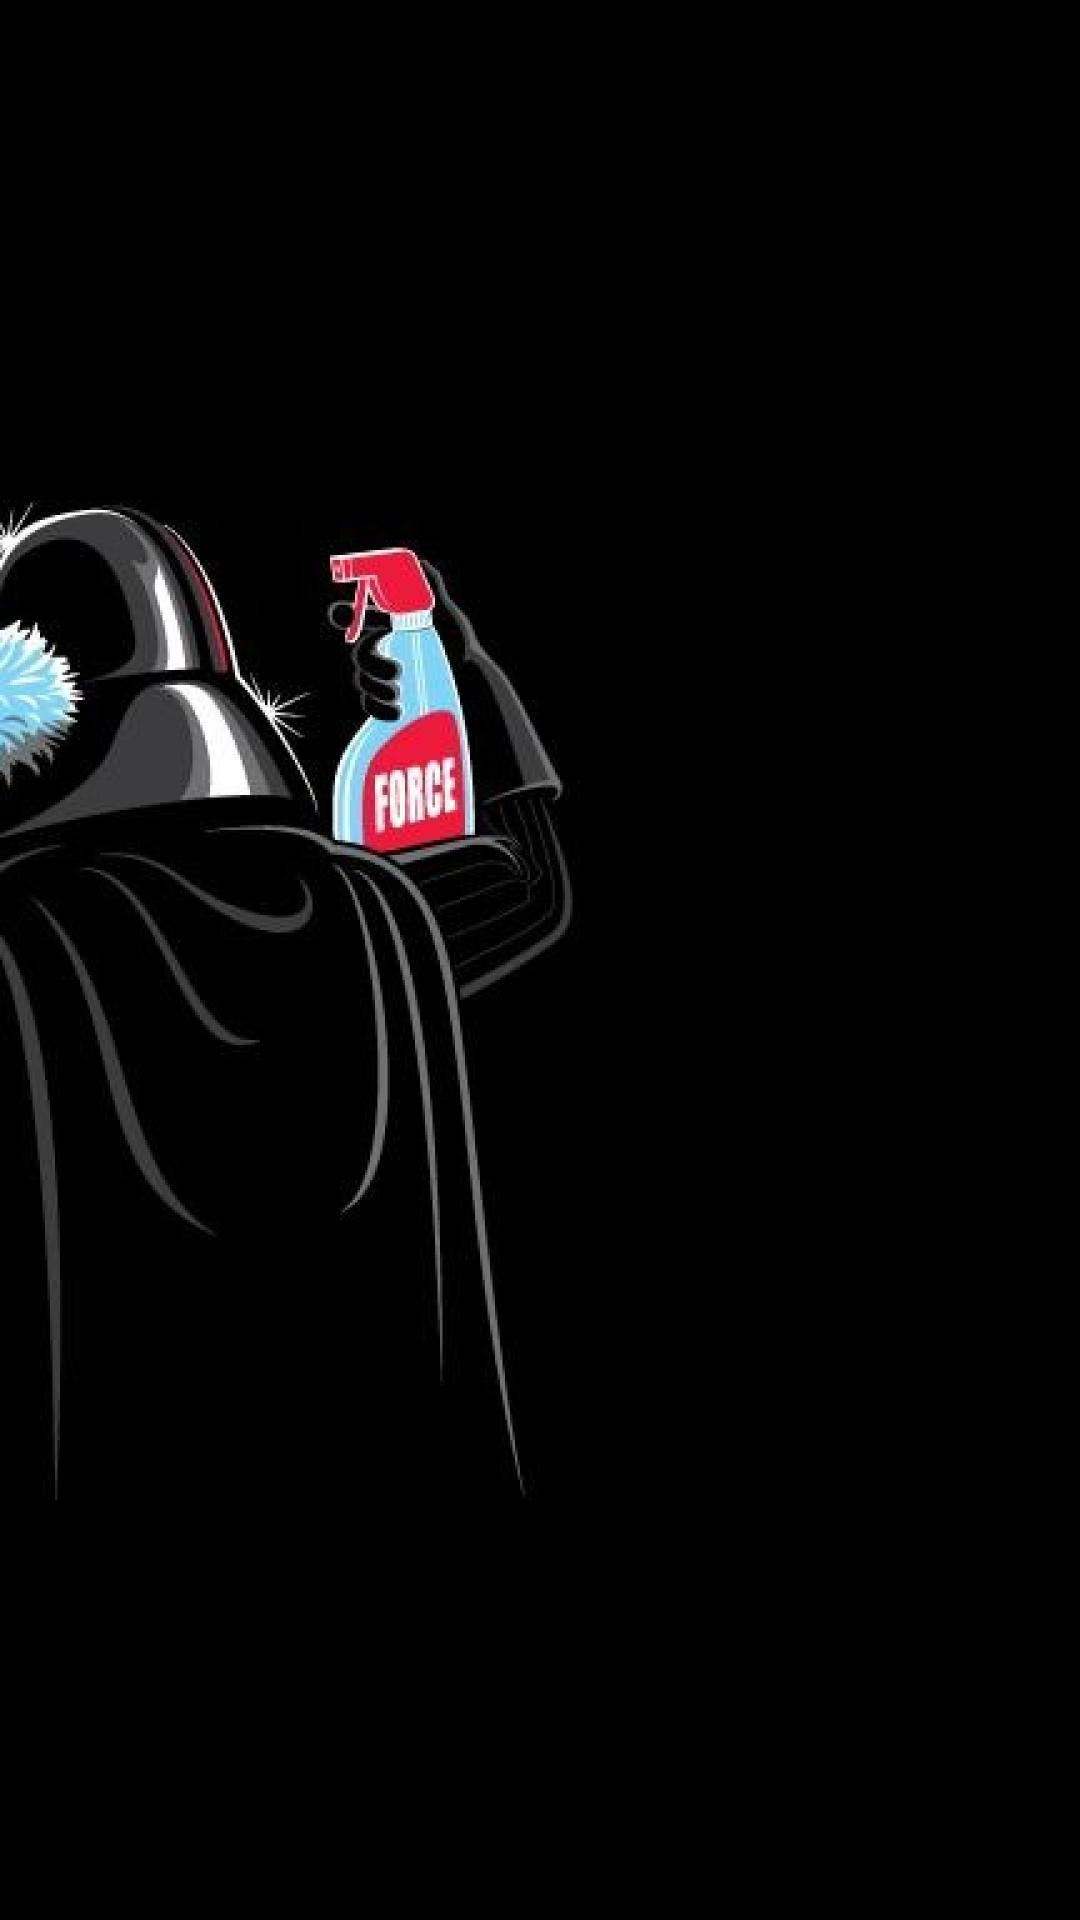 1080x1920 Funny Star Wars Iphone Wallpaper · Download · darth ...